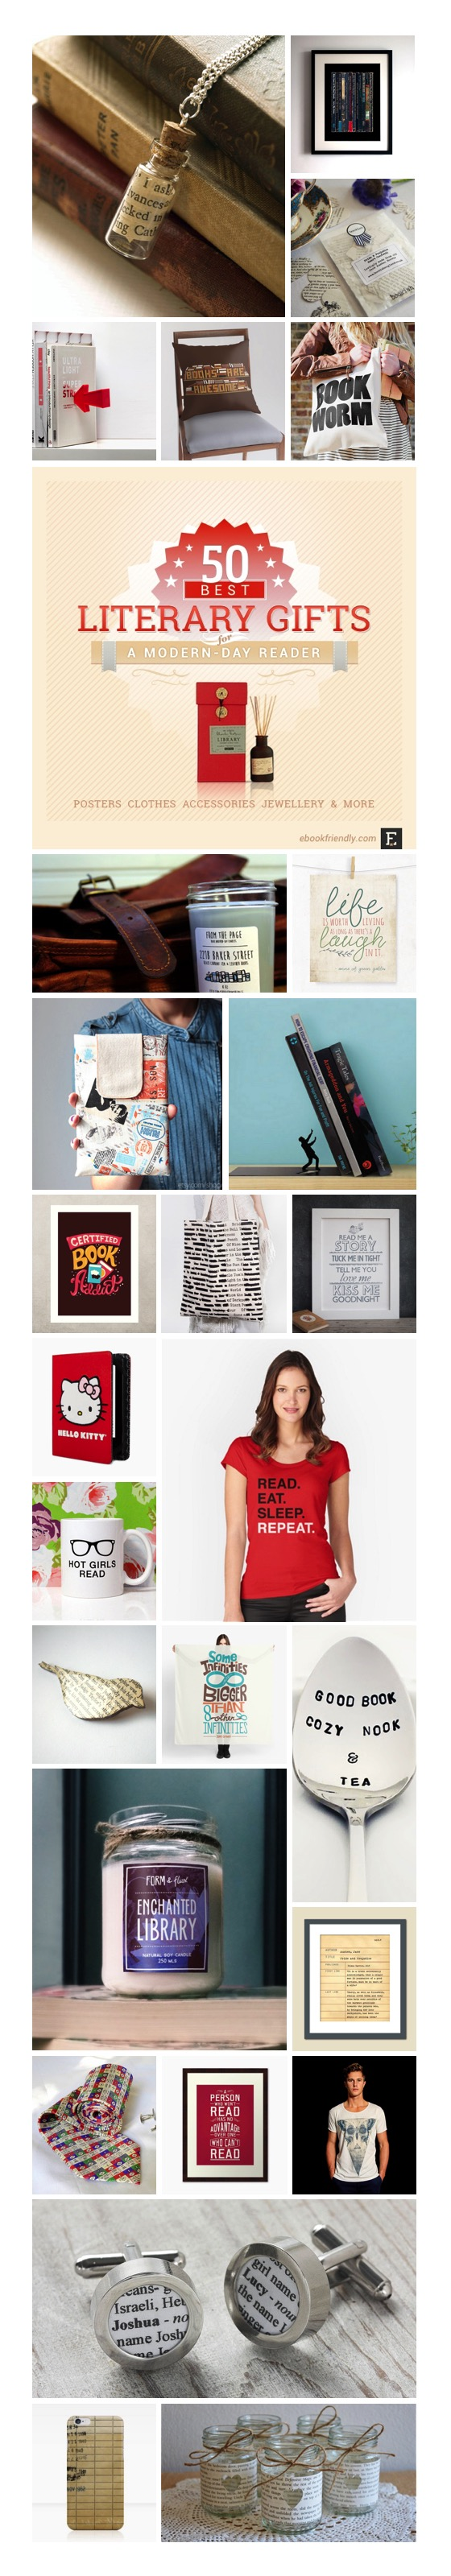 Best gifts for book lovers (infographic) | Ebook Friendly